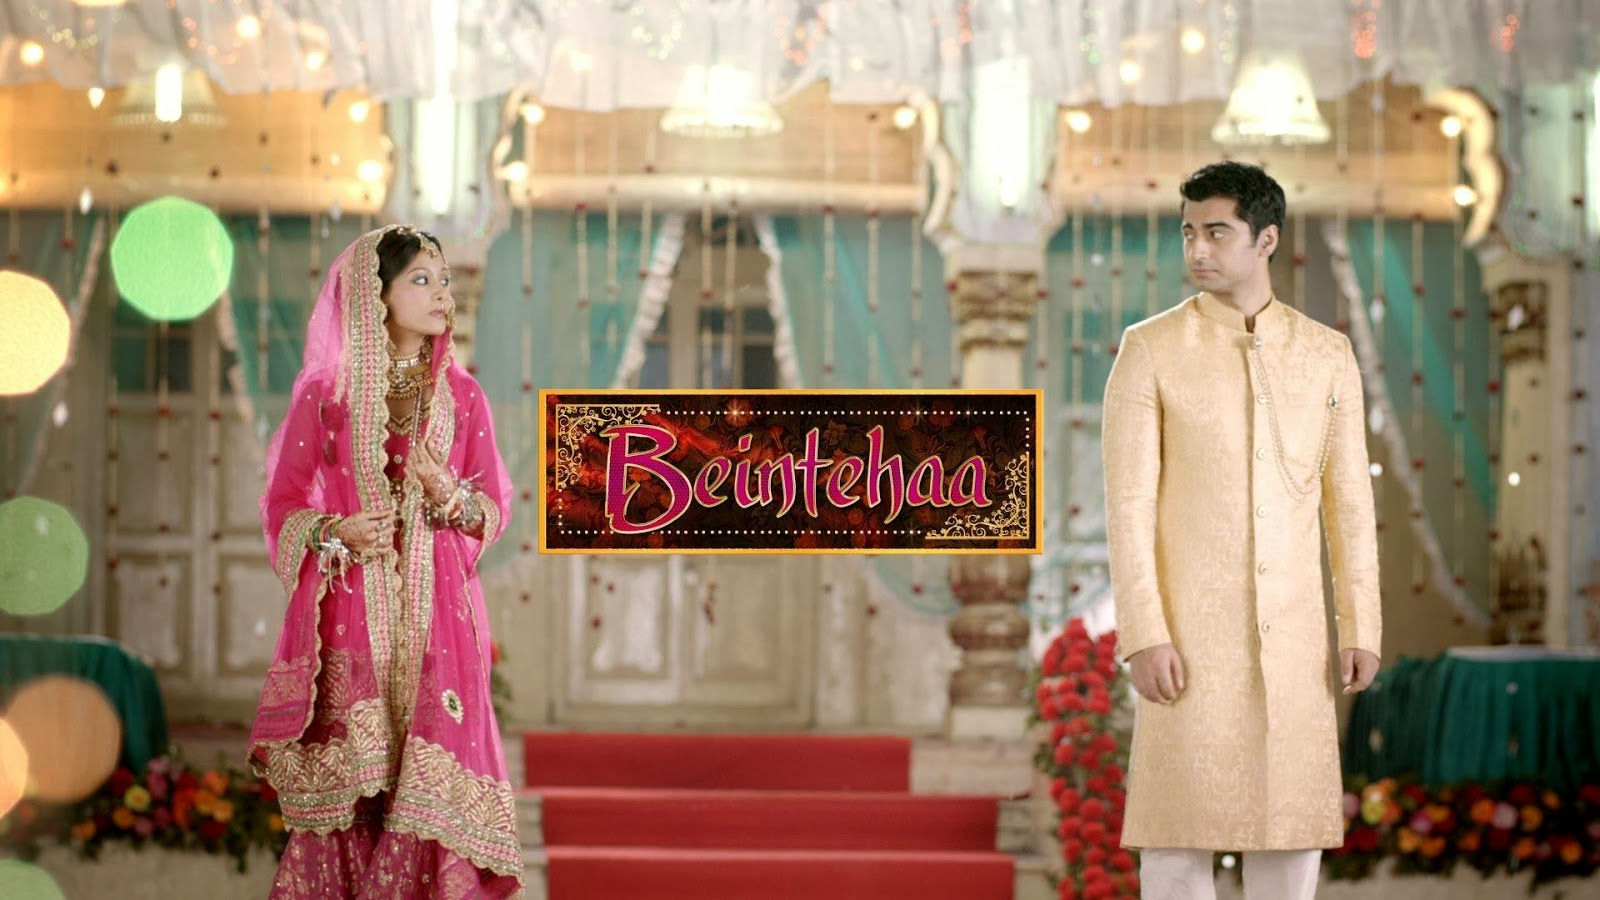 Beintehaa serial episodes dailymotion : Highlander series